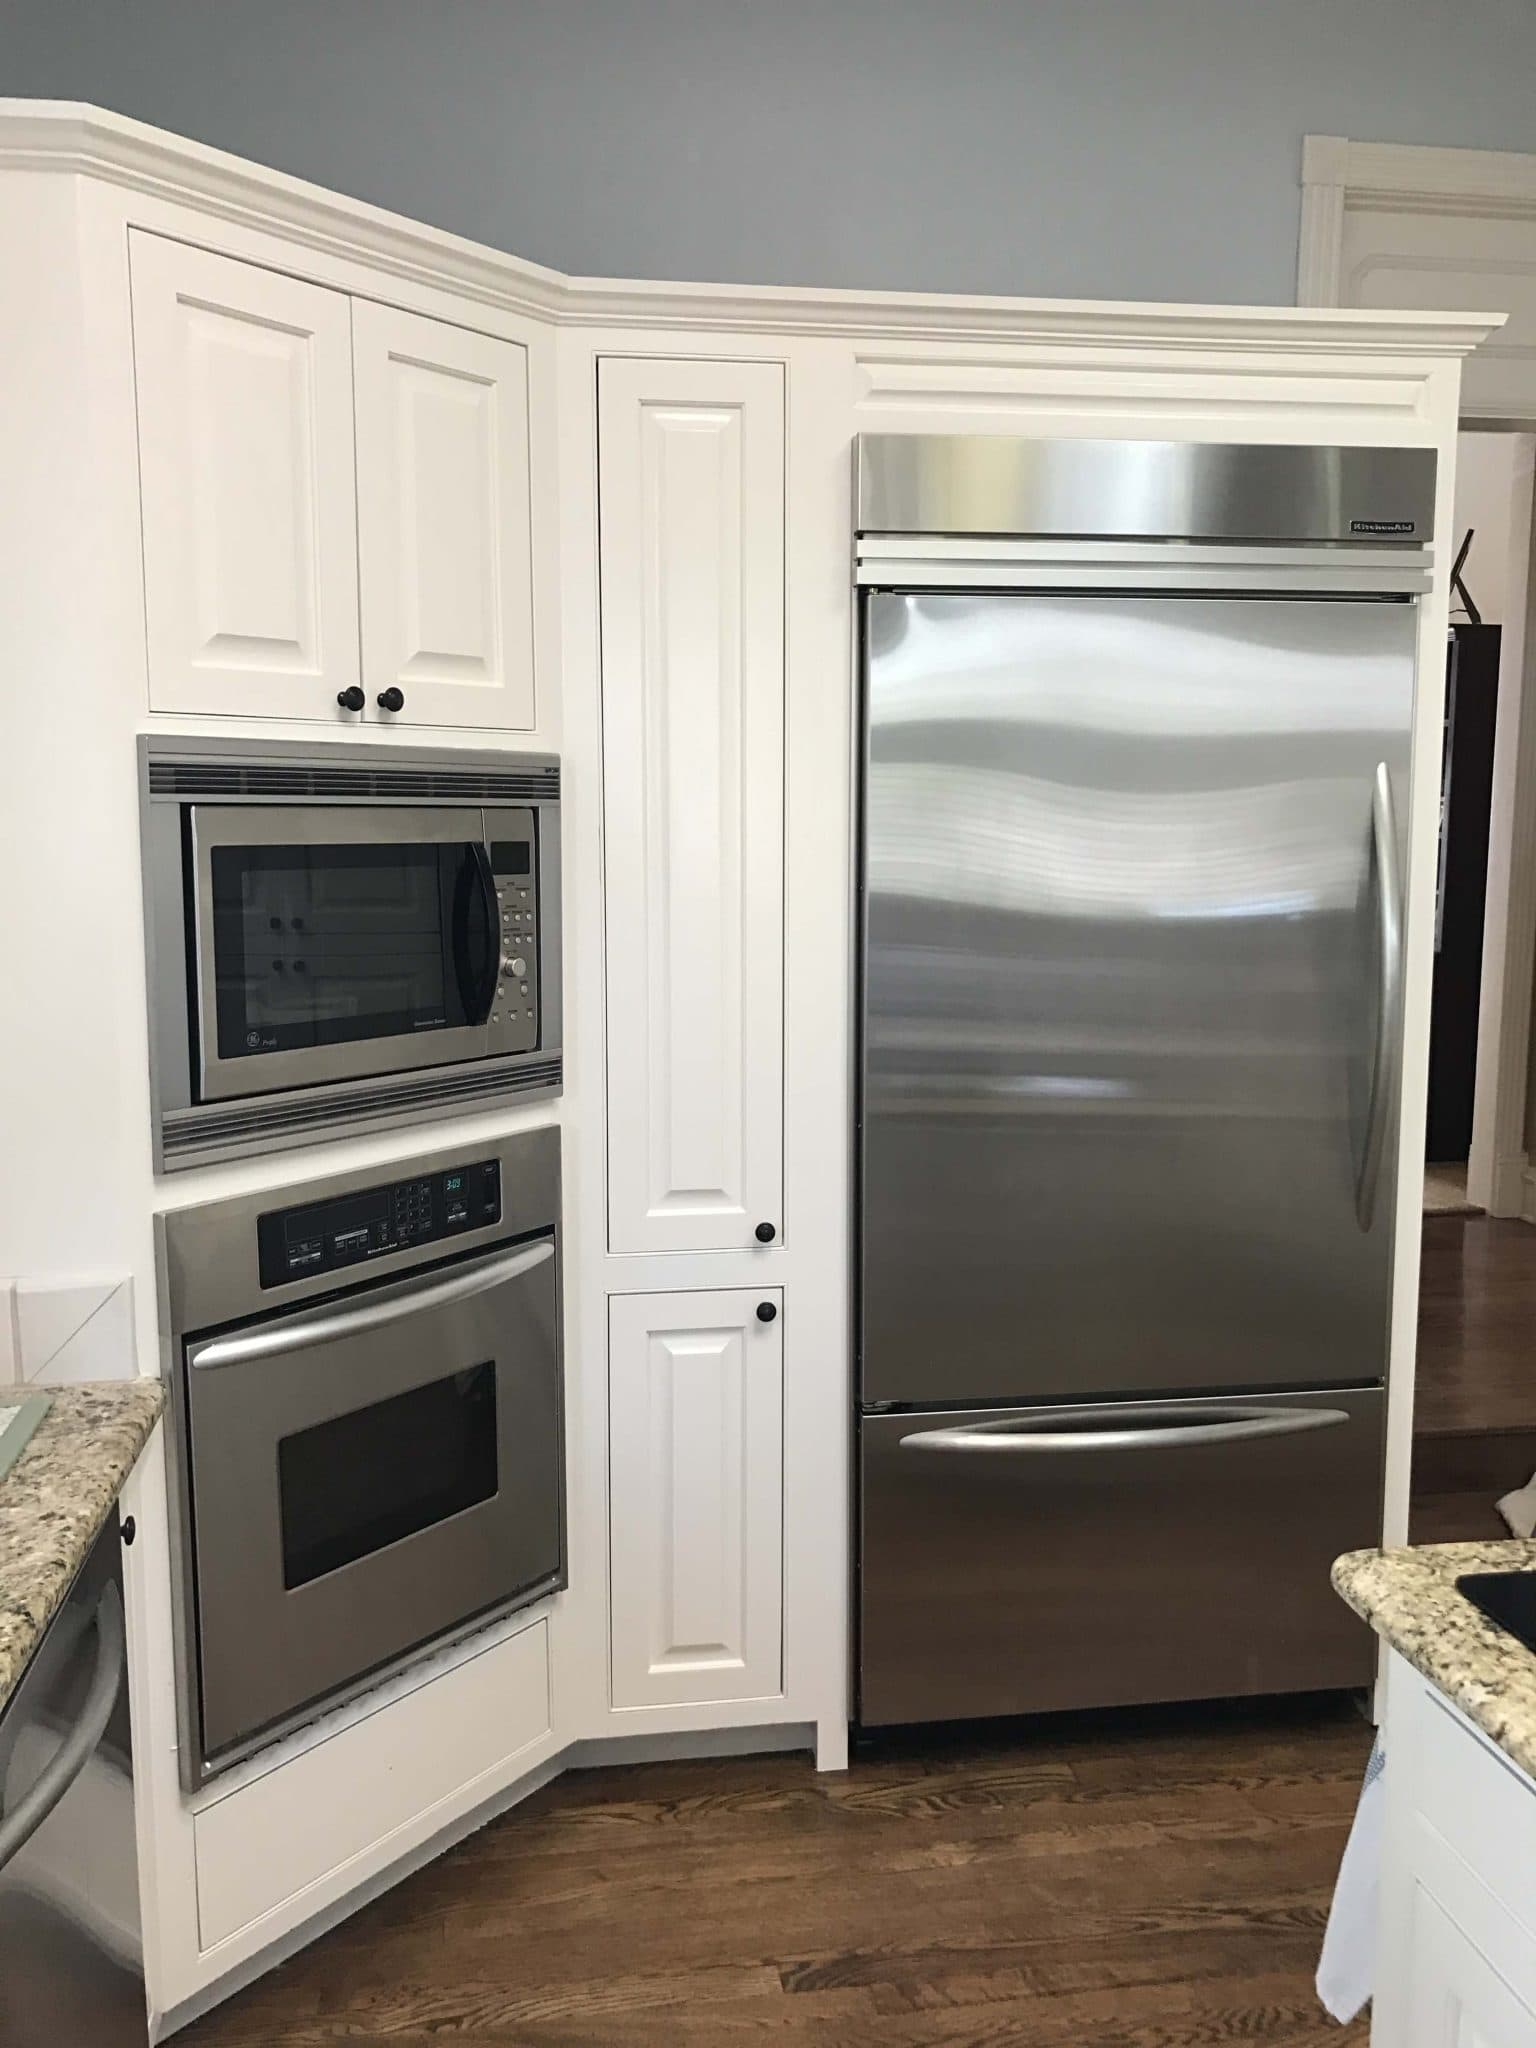 Completed Cabinet Jobs - ProFresh Cabinets